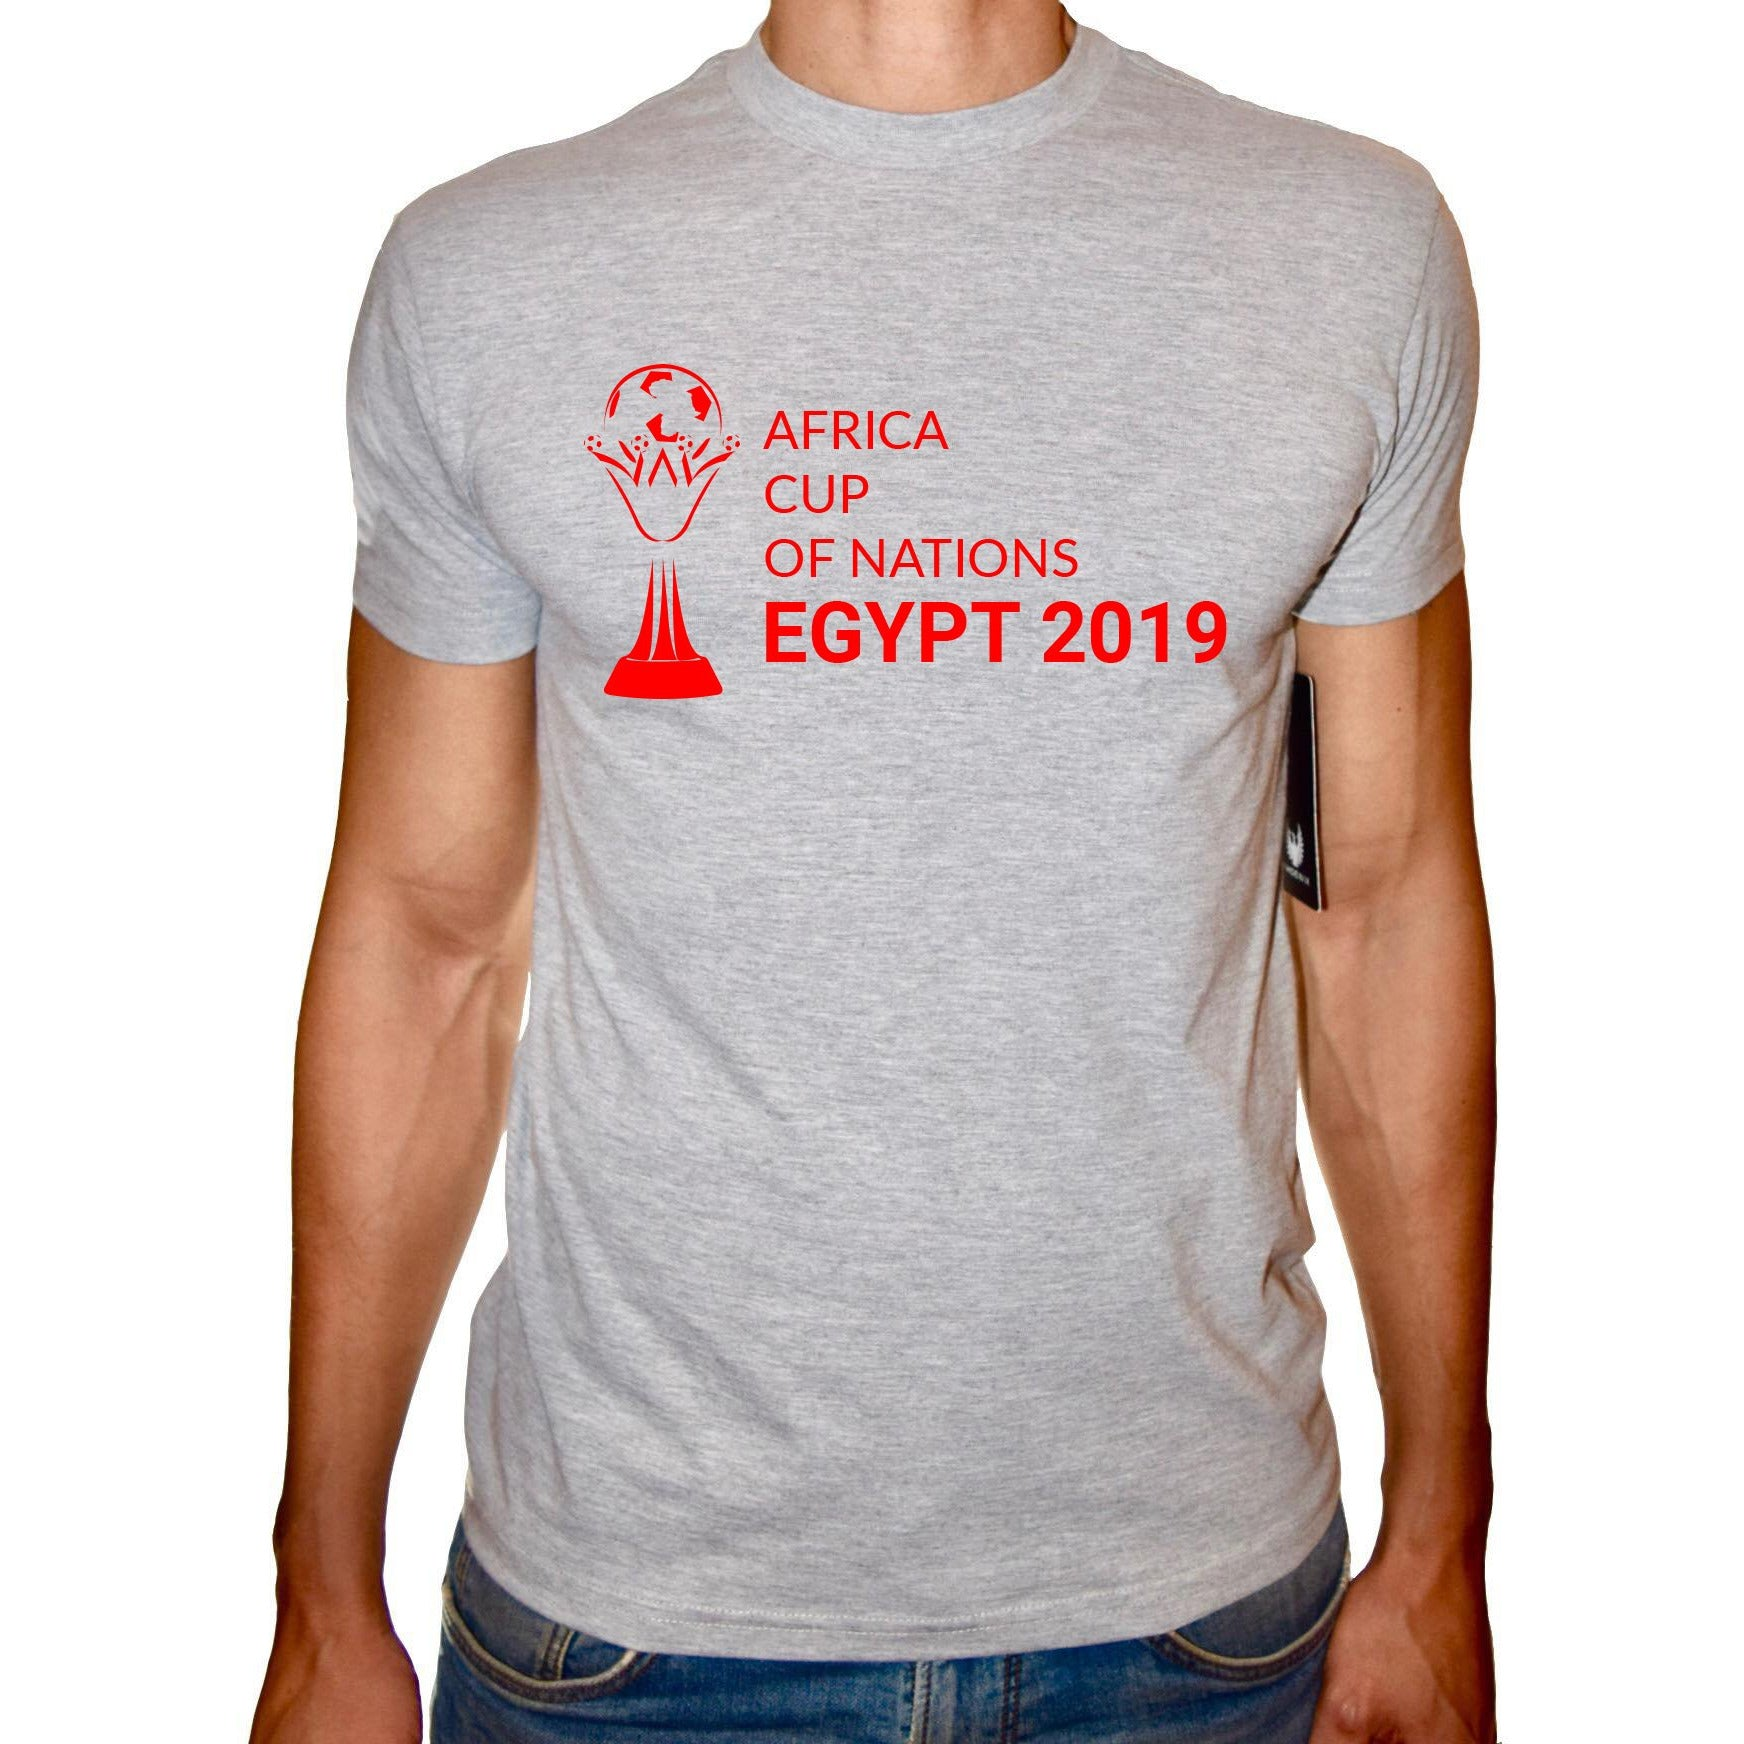 Phoenix GREY Round Neck Printed T-Shirt Men ( CAF Cup - 2019 )